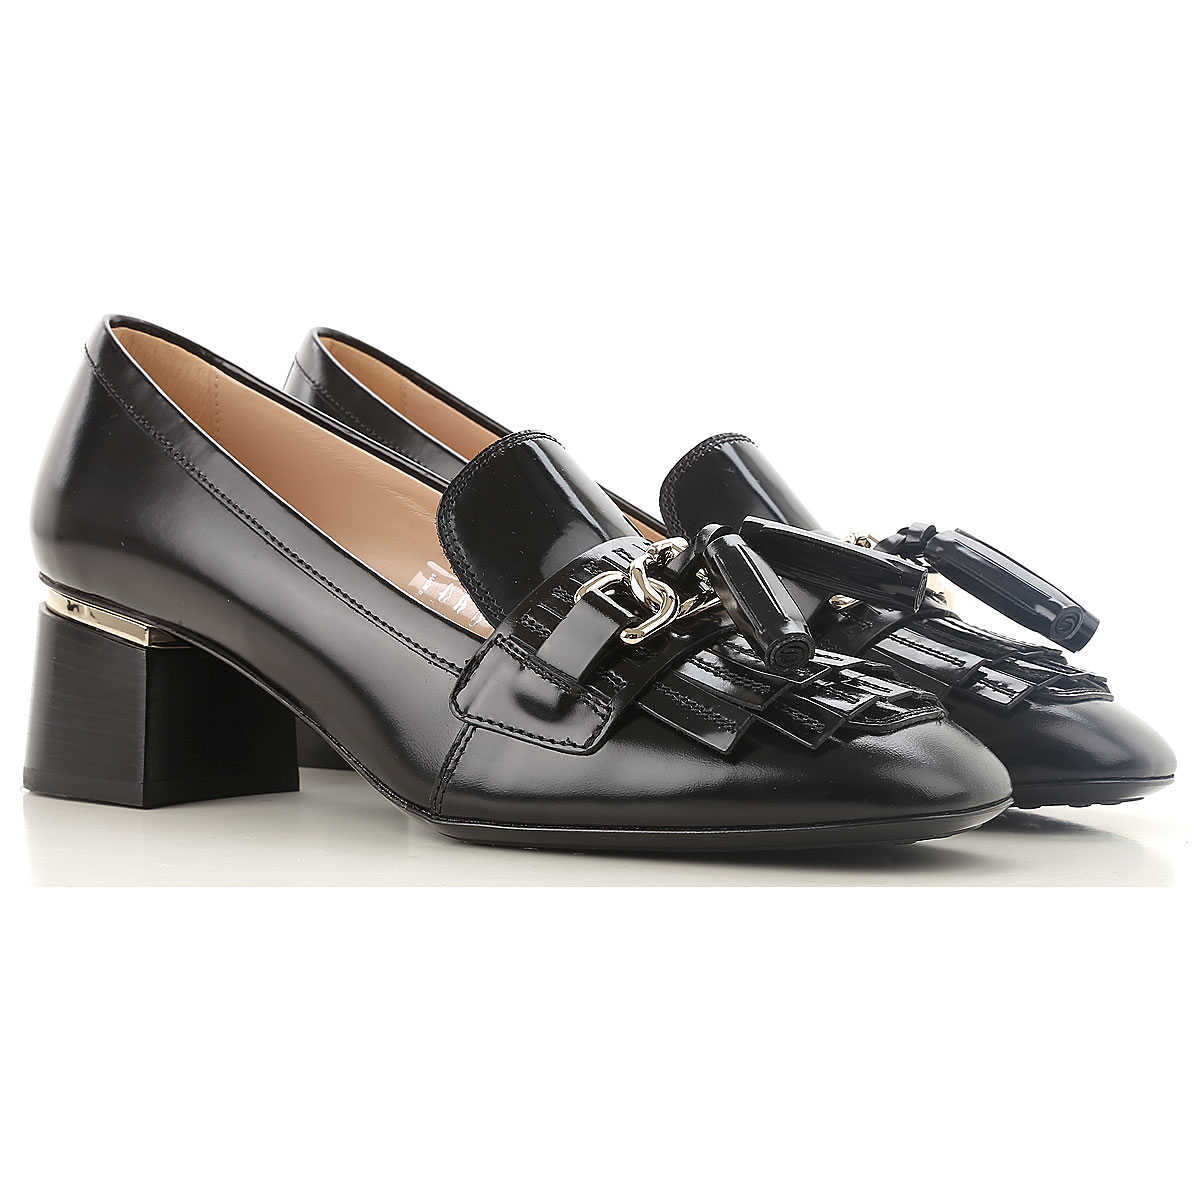 Tods Pumps & High Heels for Women in Outlet Black Canada - GOOFASH - Womens PUMPS